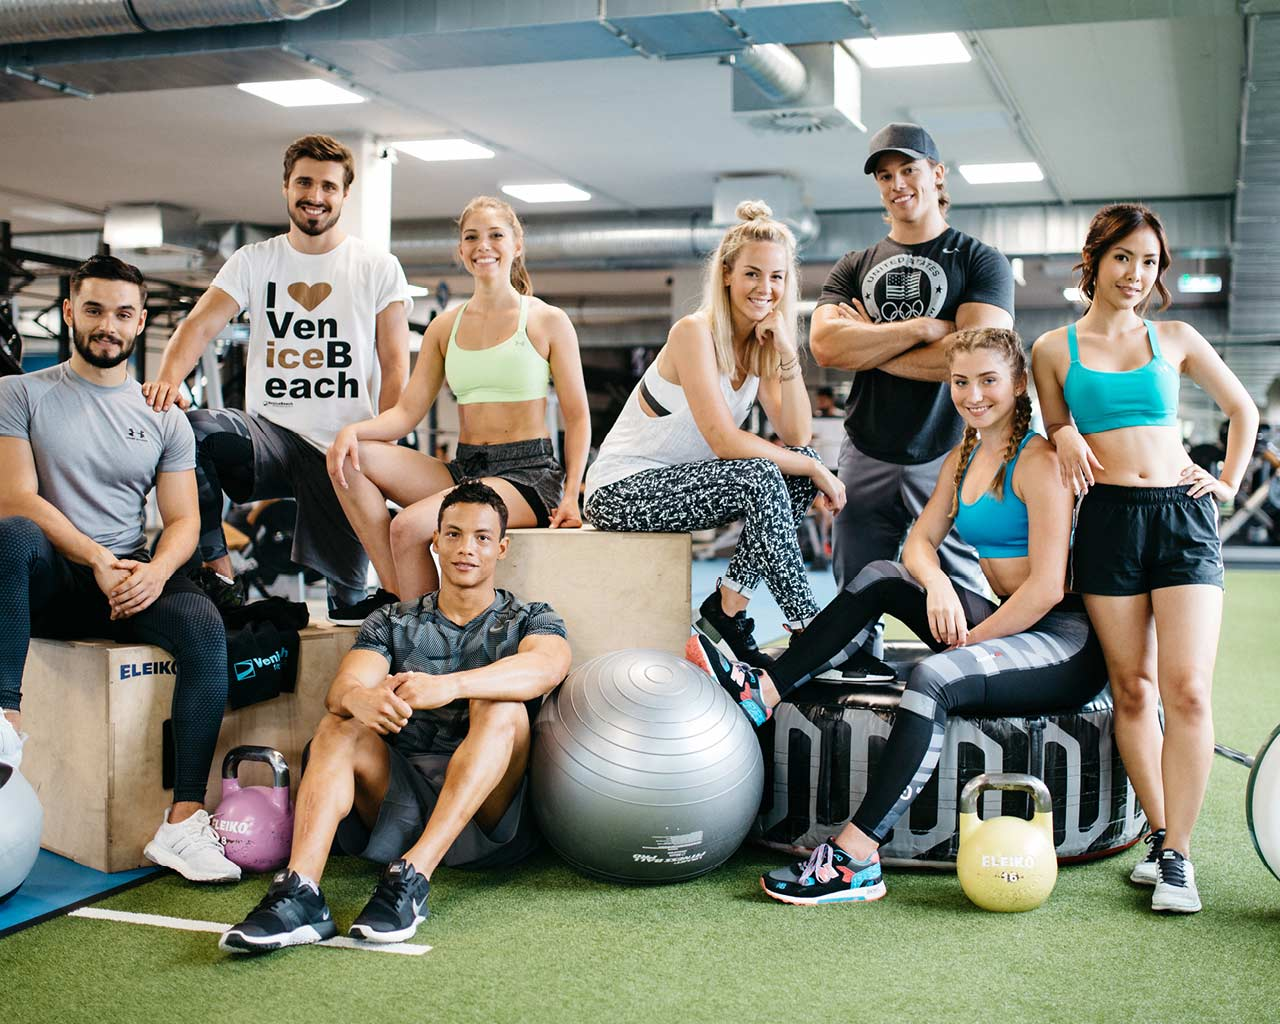 Fitness Mannheim Venice Beach Fitness Mannheim E1 Venice Beach Fitness And Workout